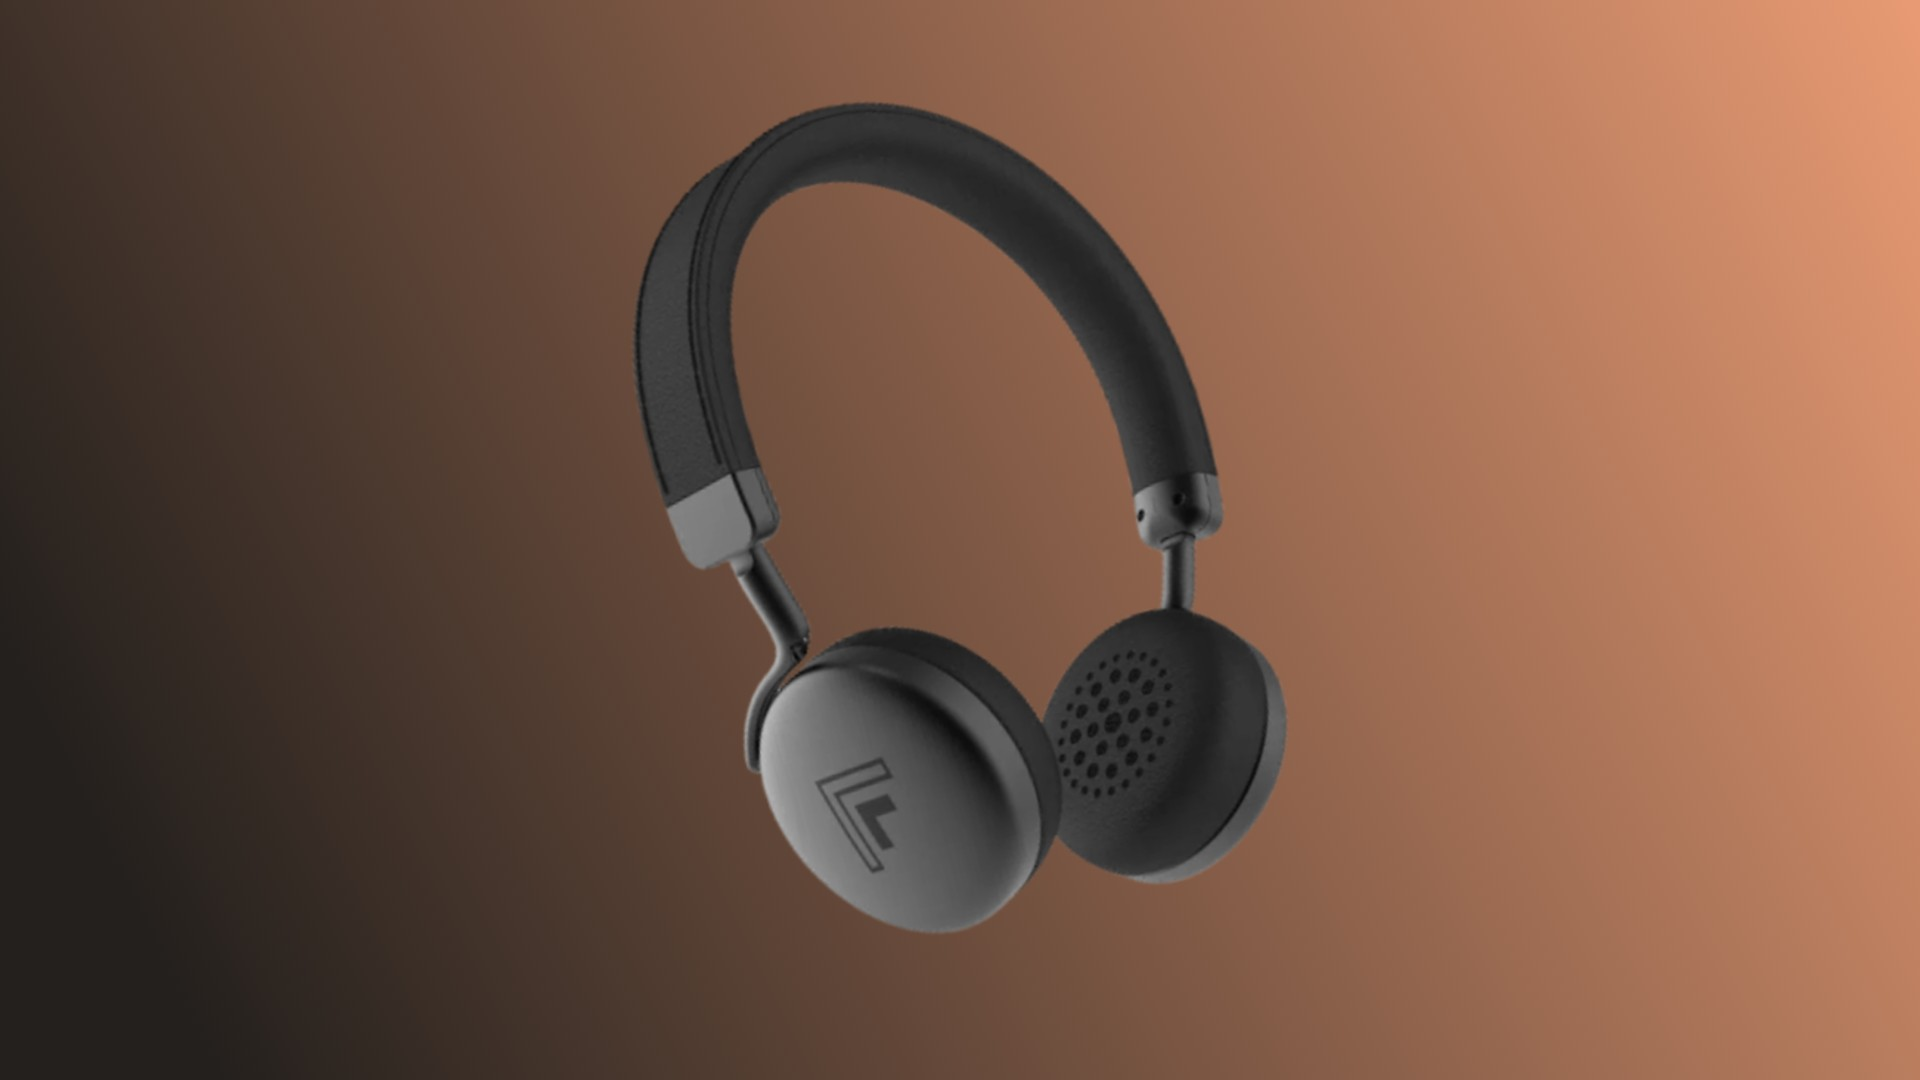 Headset bluetooth focus style 2